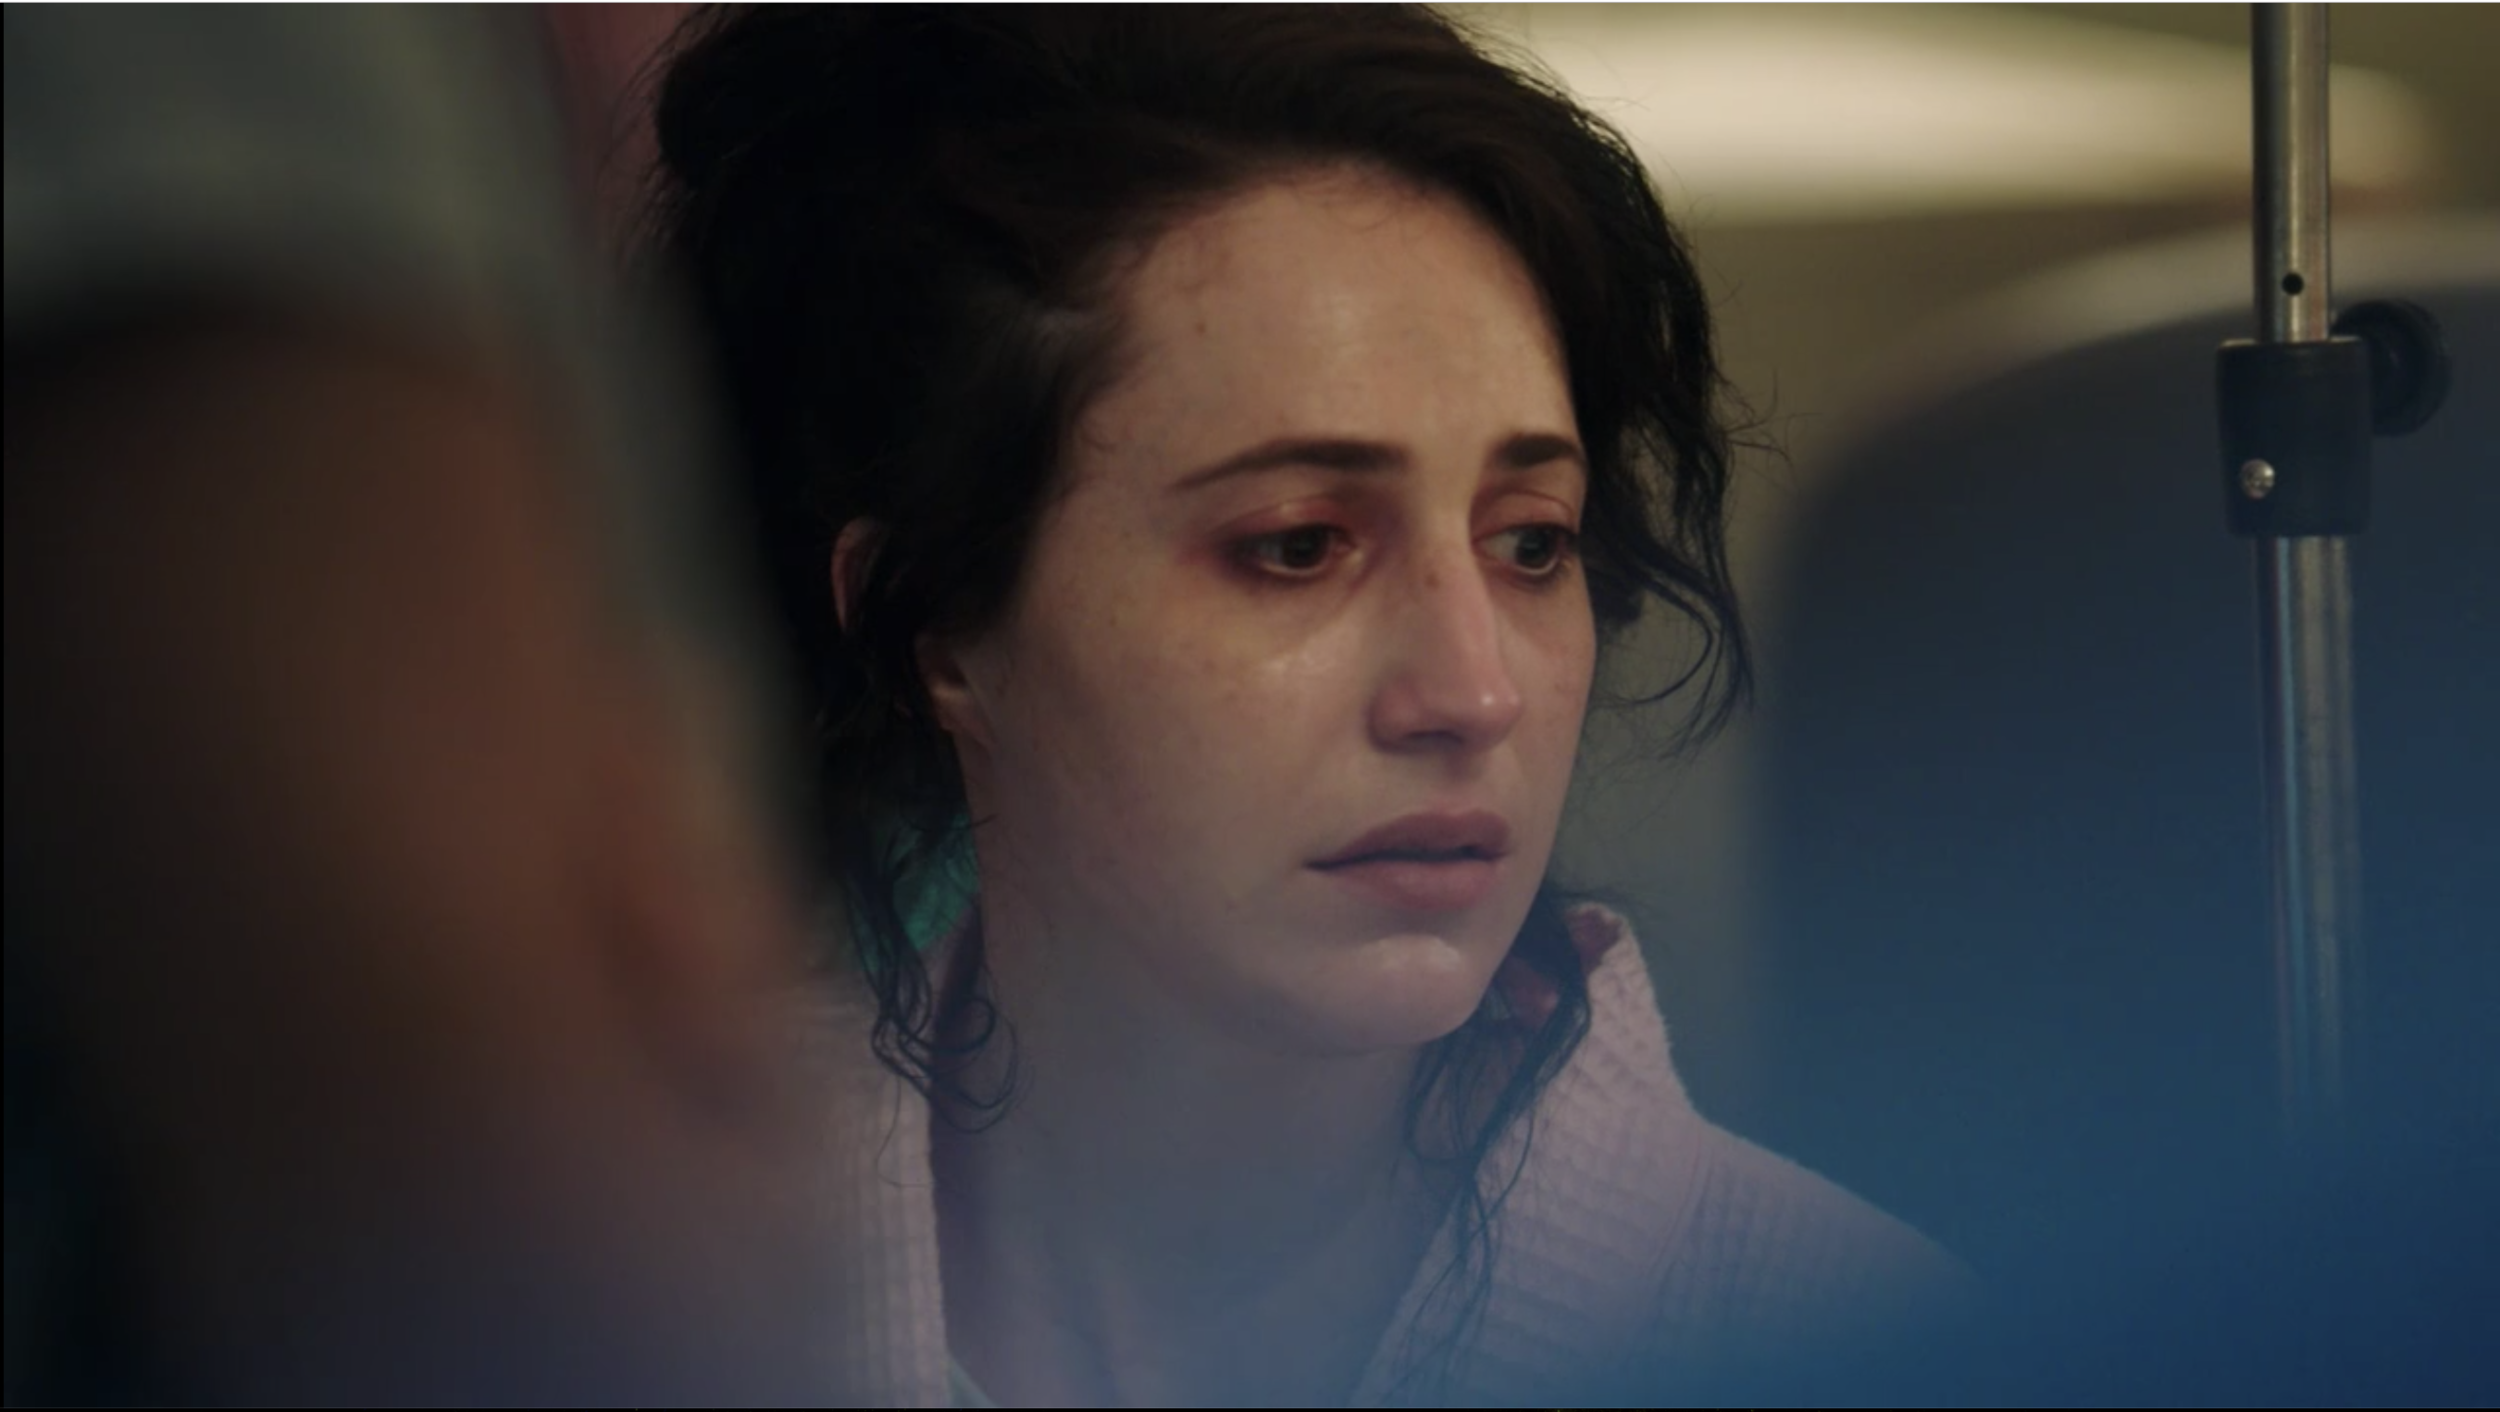 Adrienne_Whitney_Papp_The_ Resident_AdrienneWhitneyPapp_TheResident_S2E1_12.png